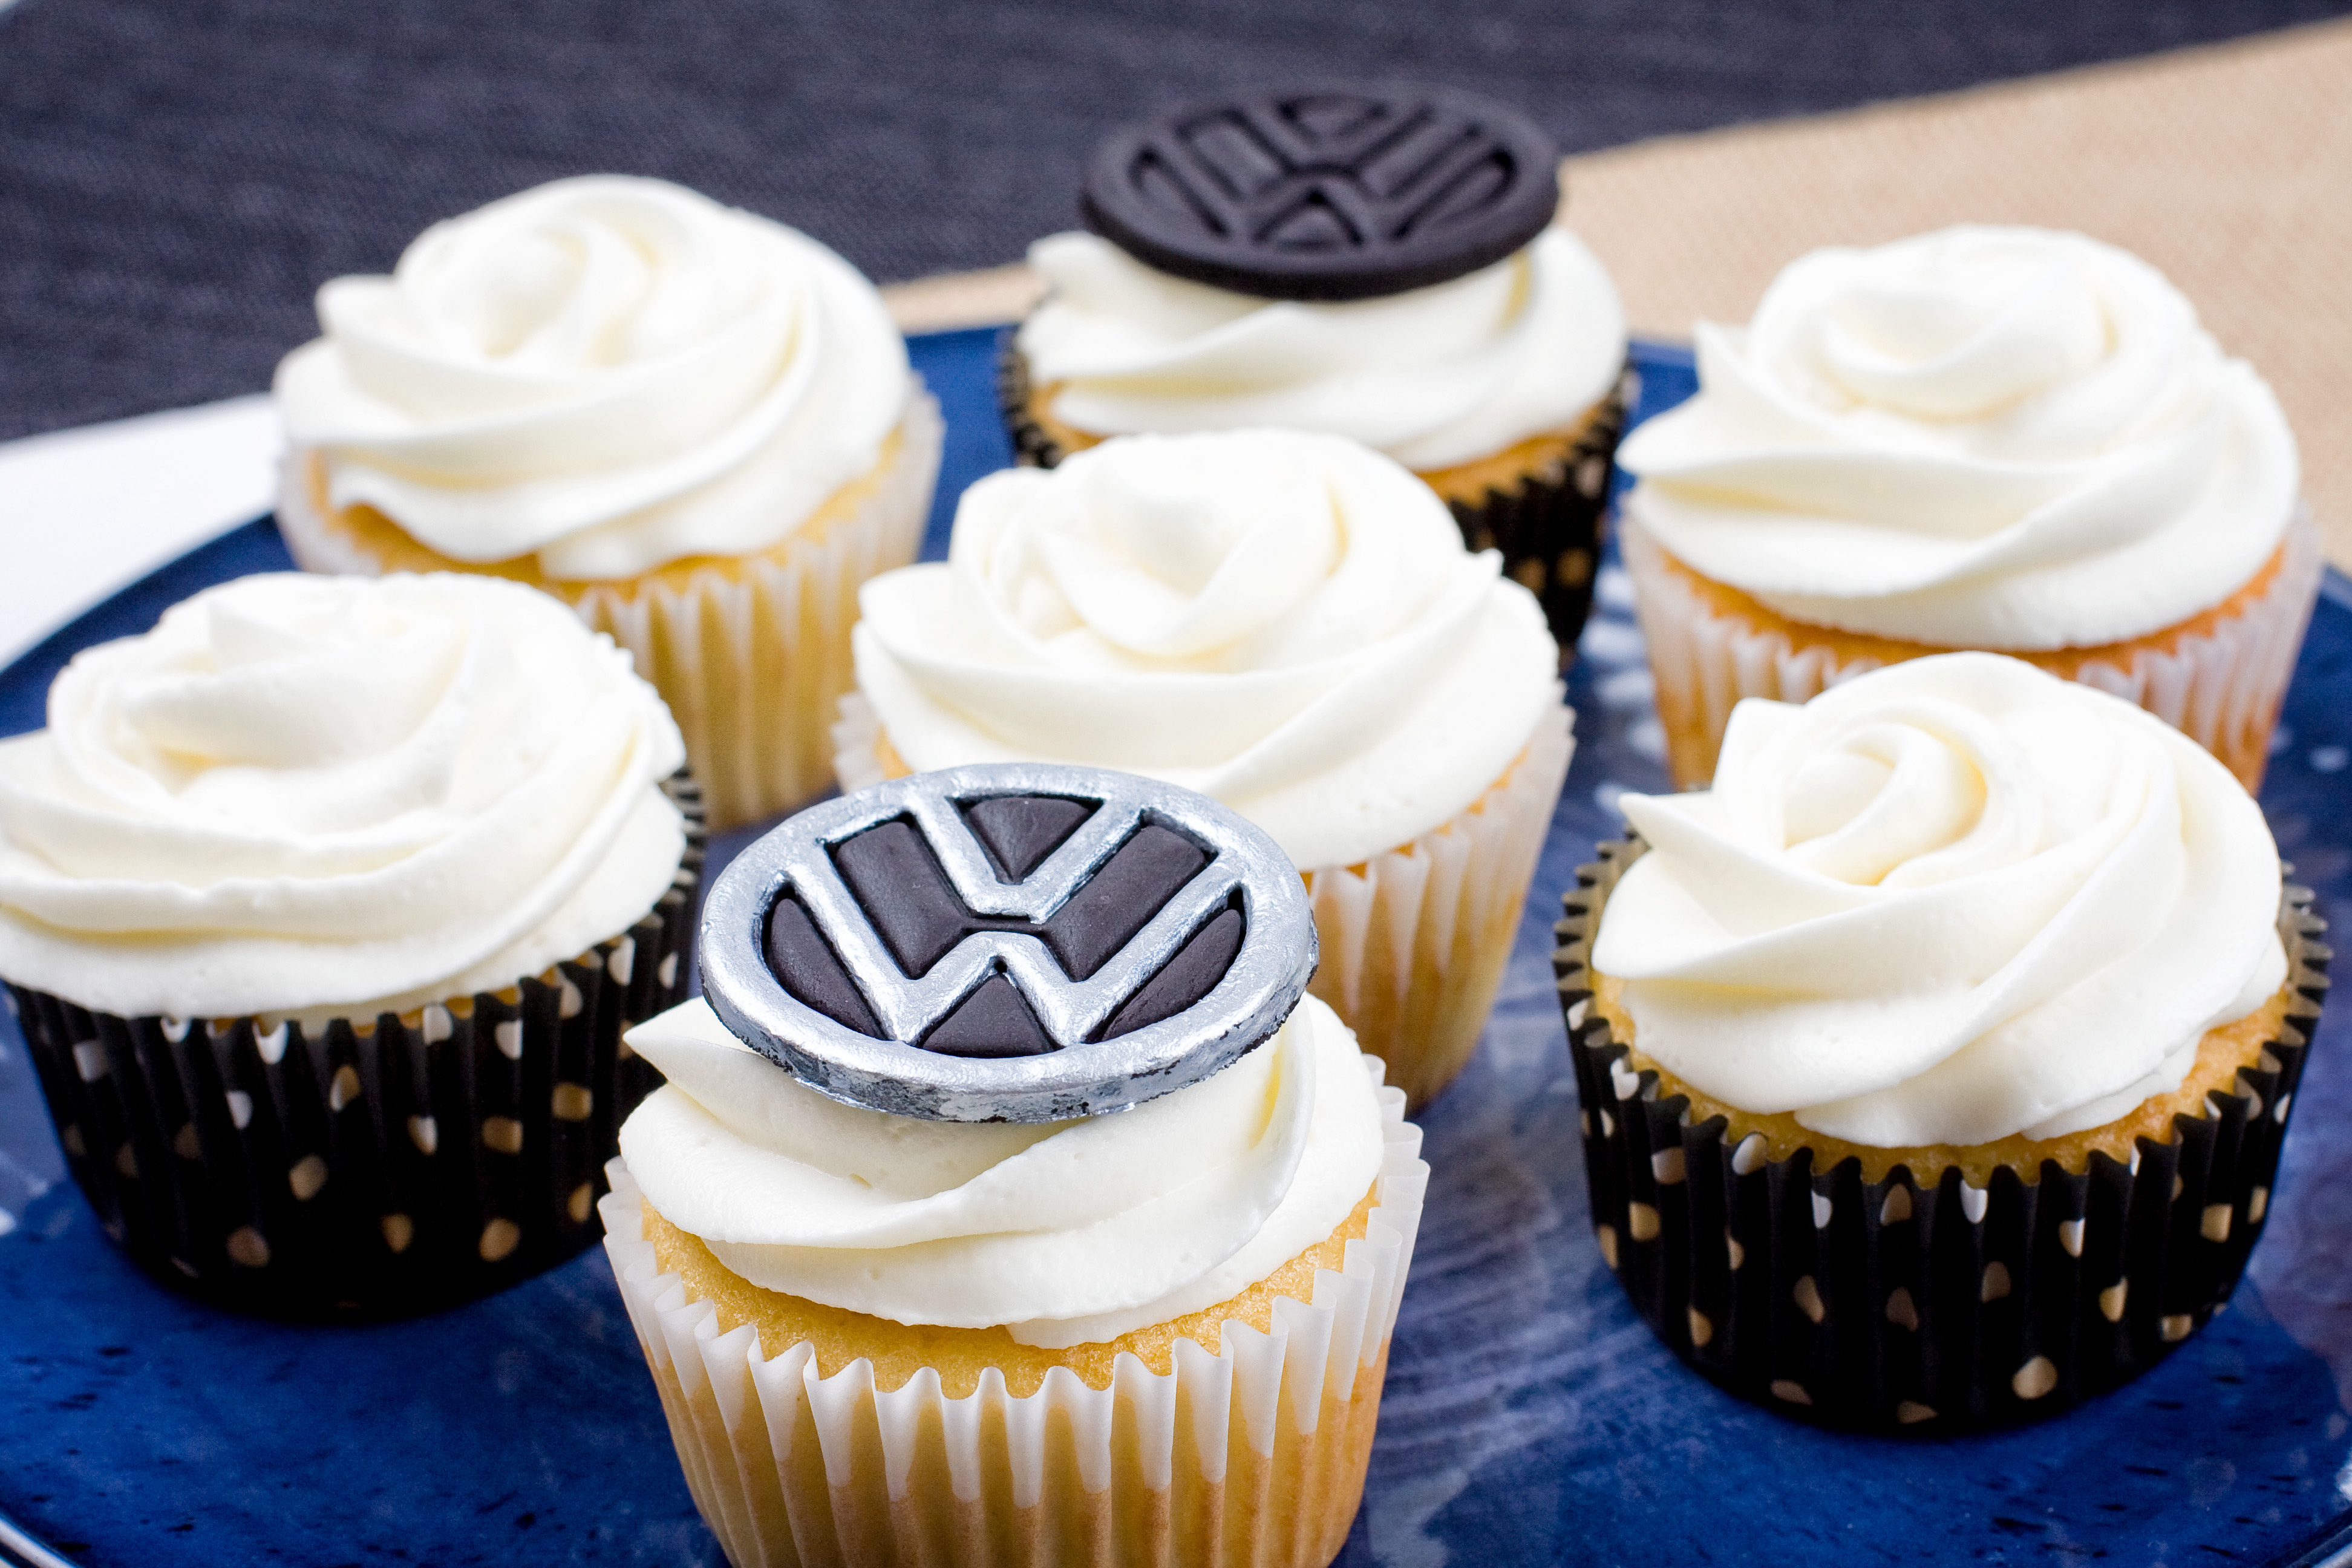 Volkswagen Cupcakes Just Be Slower